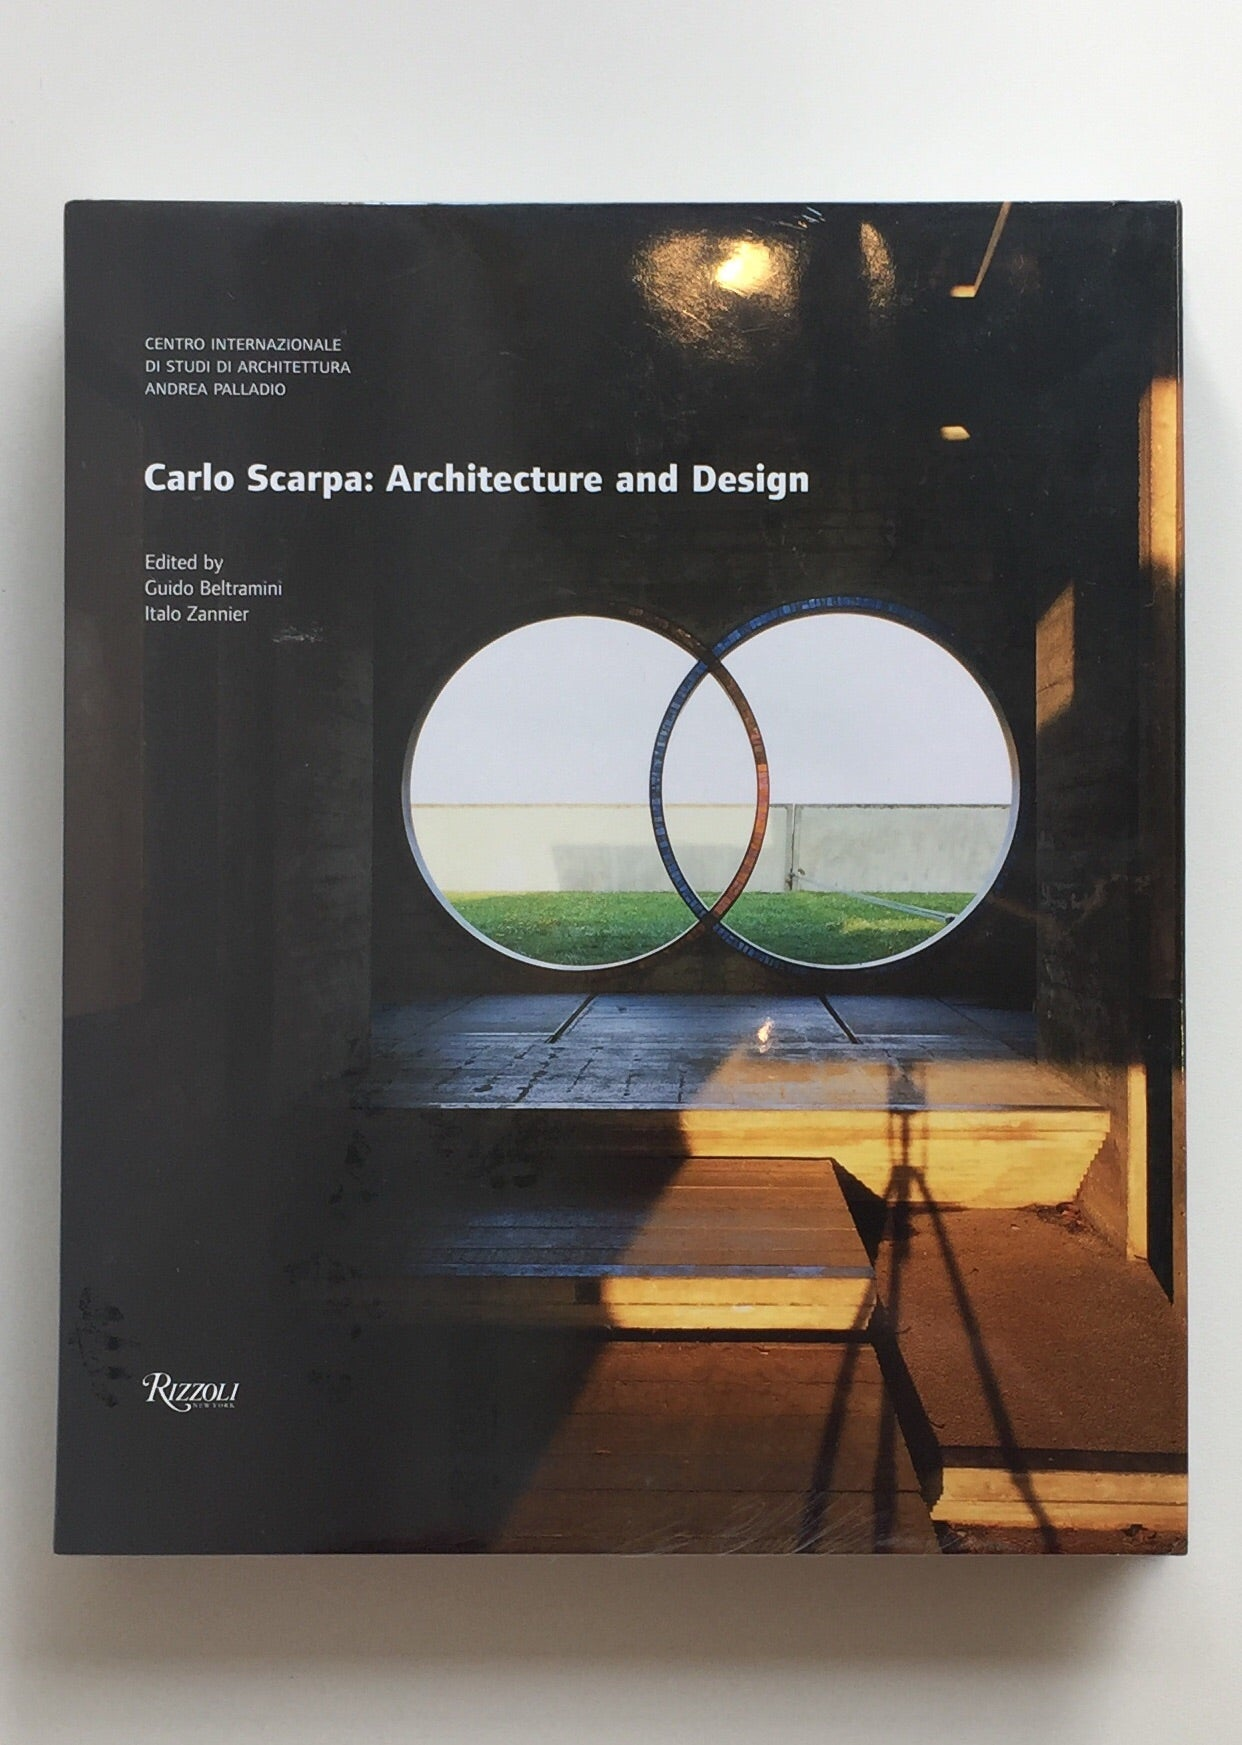 Carlo Scarpa: Architecture and Design (Edited by Guido Beltramini and Italo Zannier)